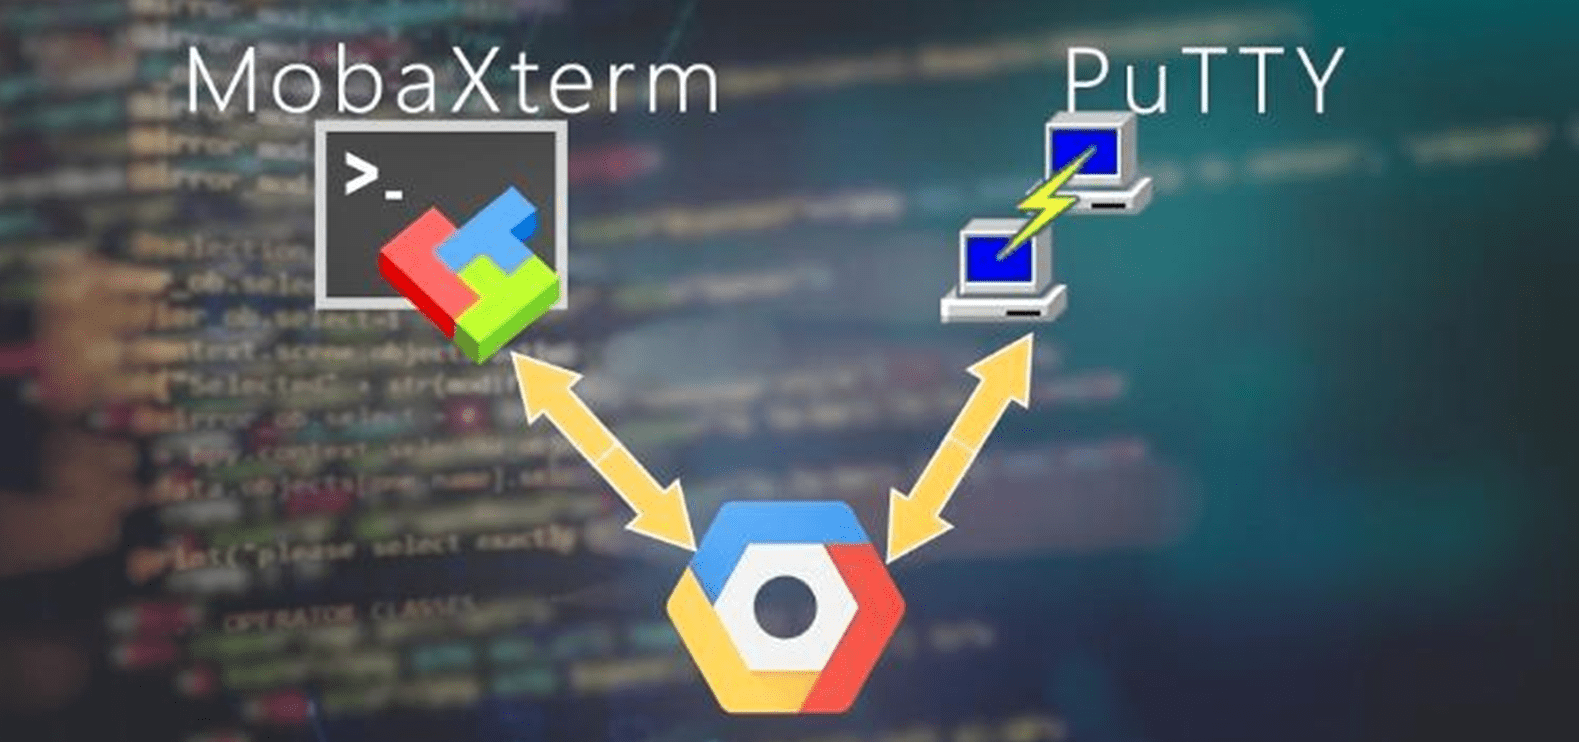 What are MobaXterm and Putty